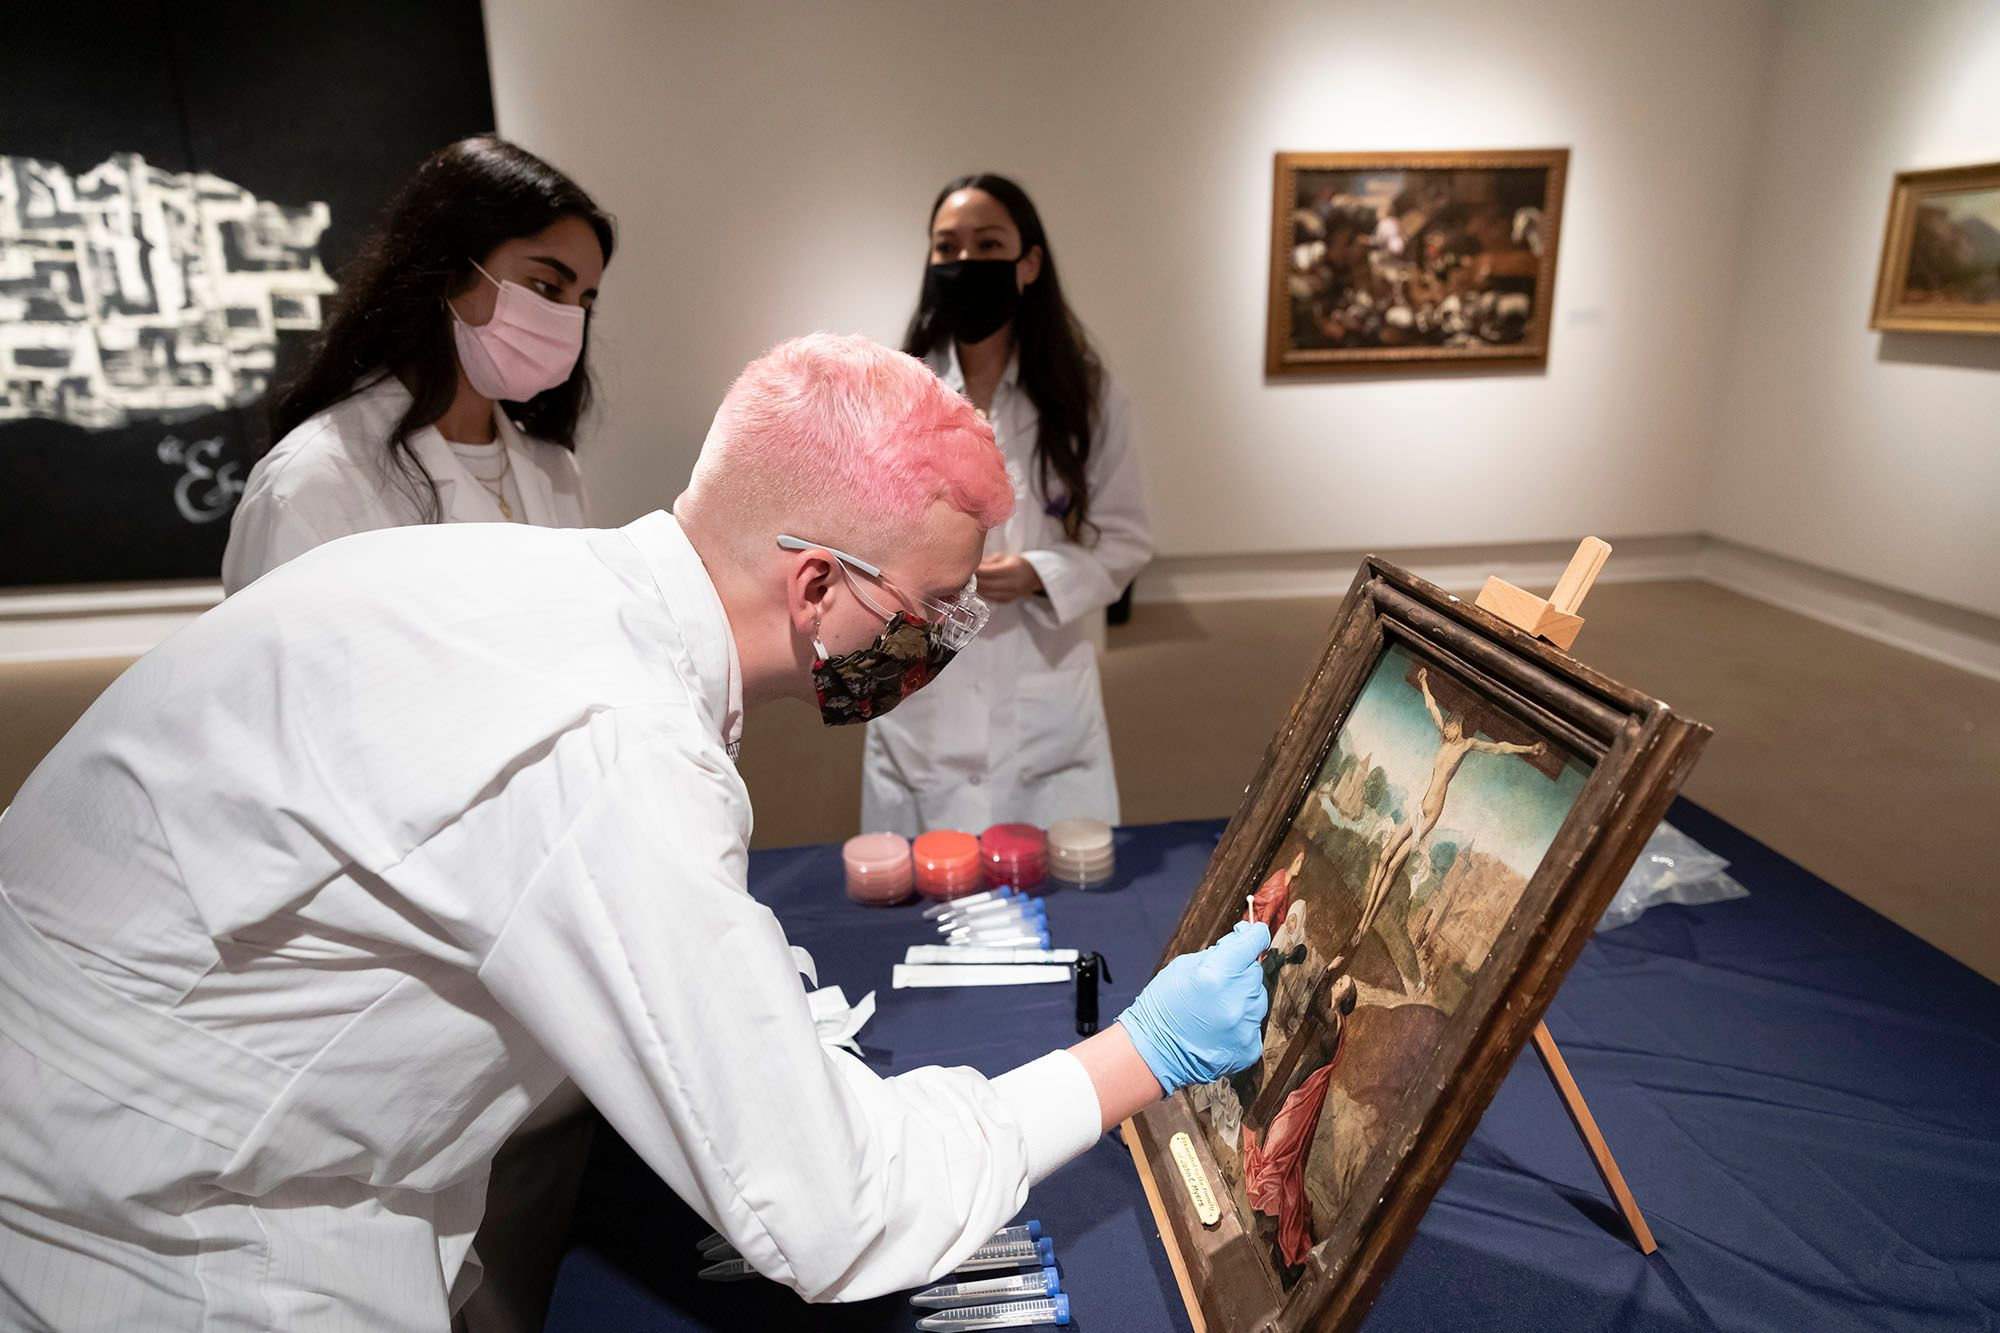 Isaac Gorres '21 joined forces with biology professor Brendaliz Santiago-Navarez to study microbes on a 14th-century painting in the Cornell Fine Arts Museum's collection.